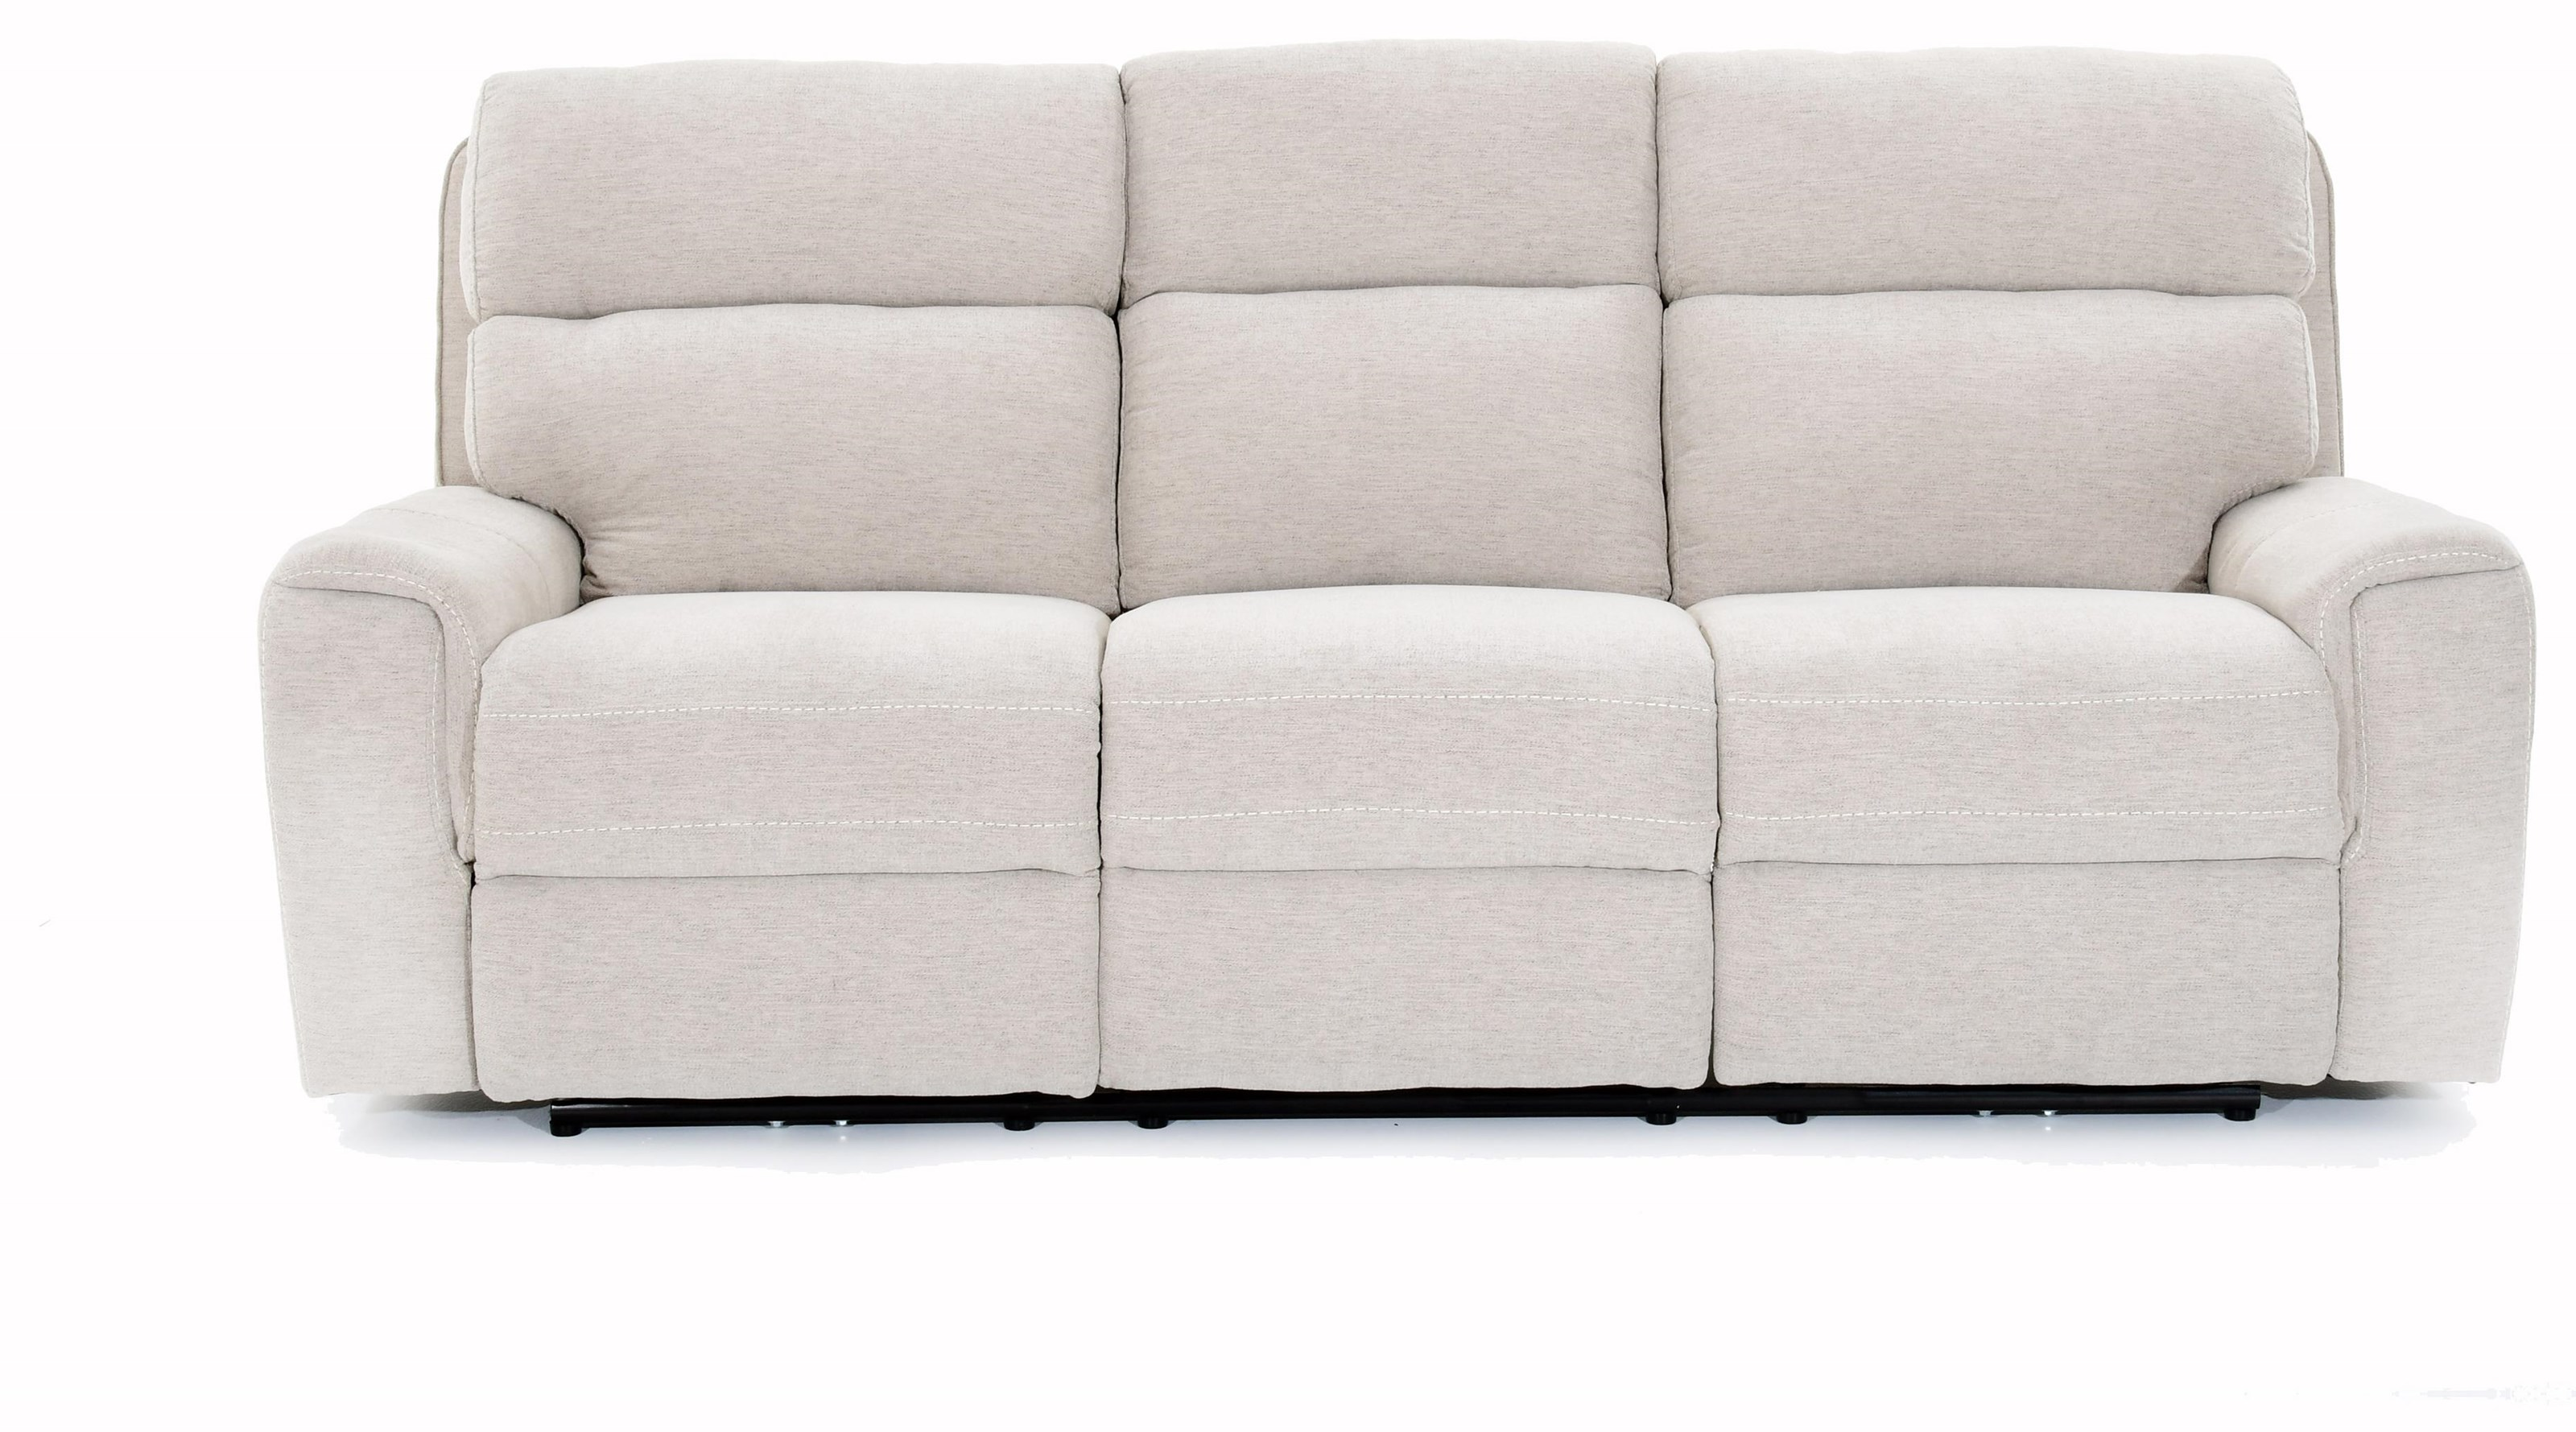 Oberon Power Motion Sofa by Trend Resources International at Baer's Furniture